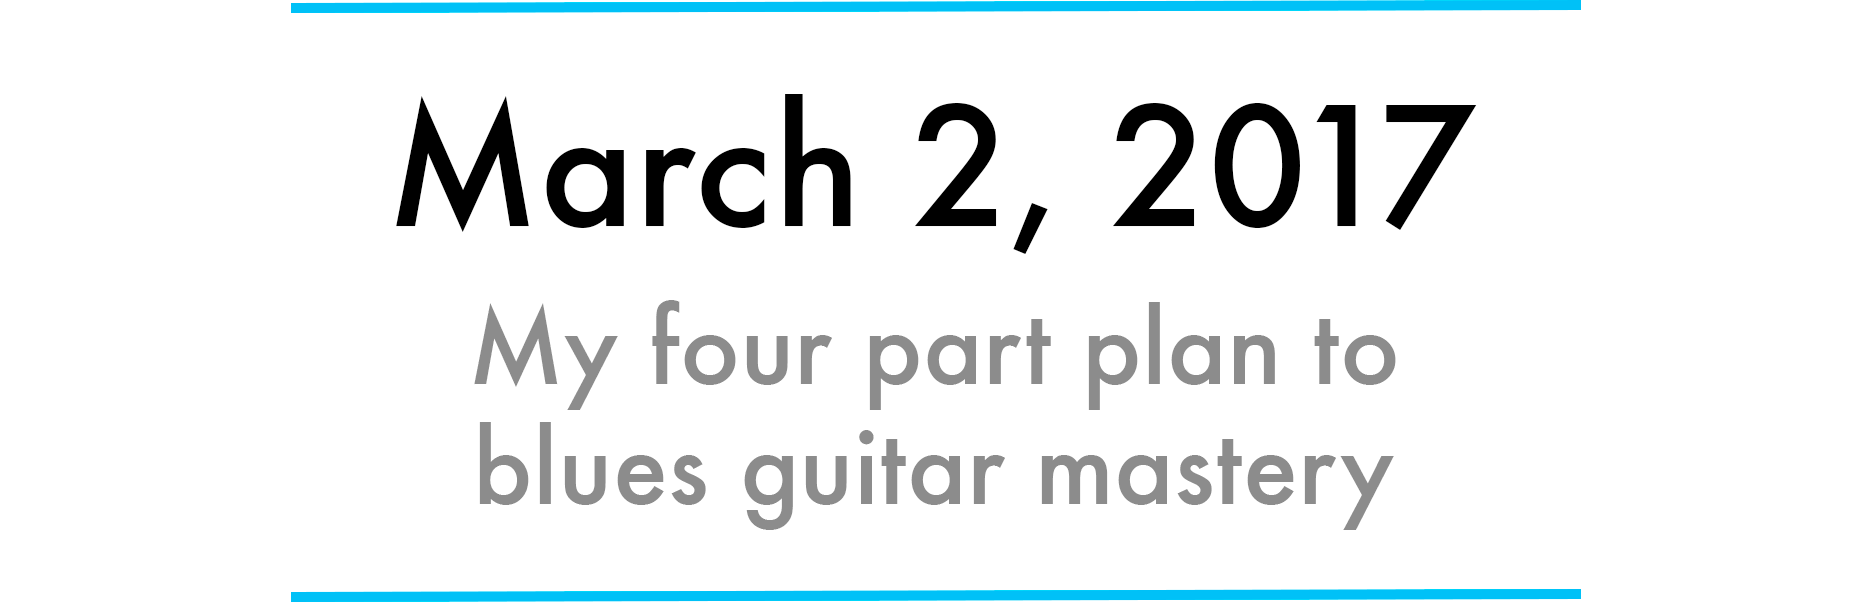 How to become a master of improvisational blues guitar in one month